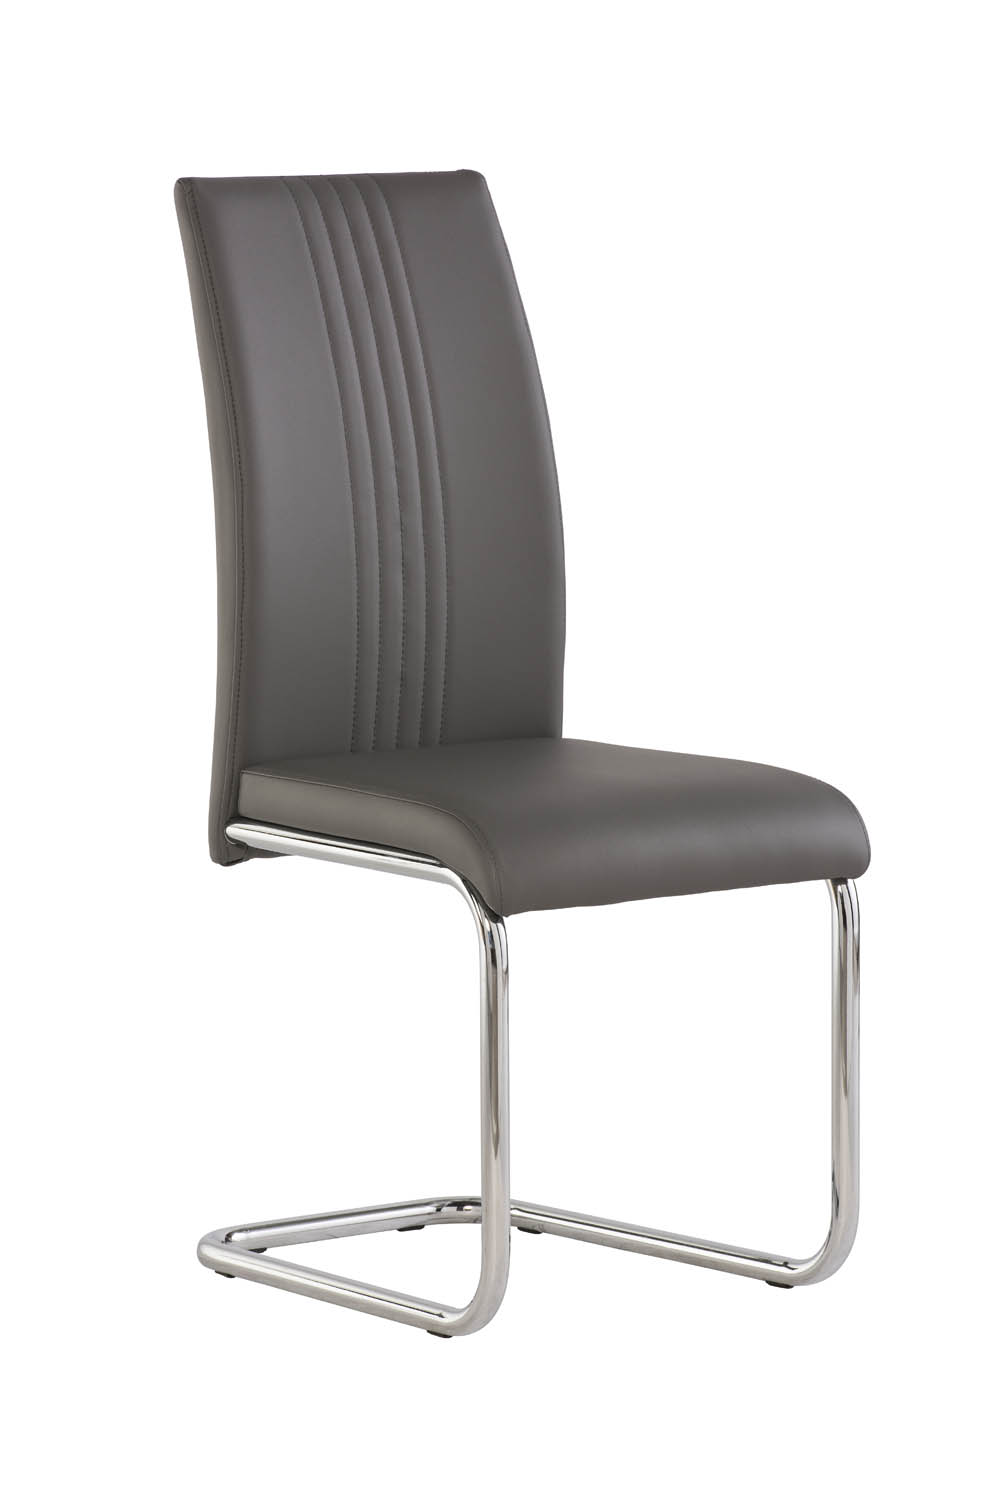 https://www.firstfurniture.co.uk/pub/media/catalog/product/m/o/mon02grey.jpg